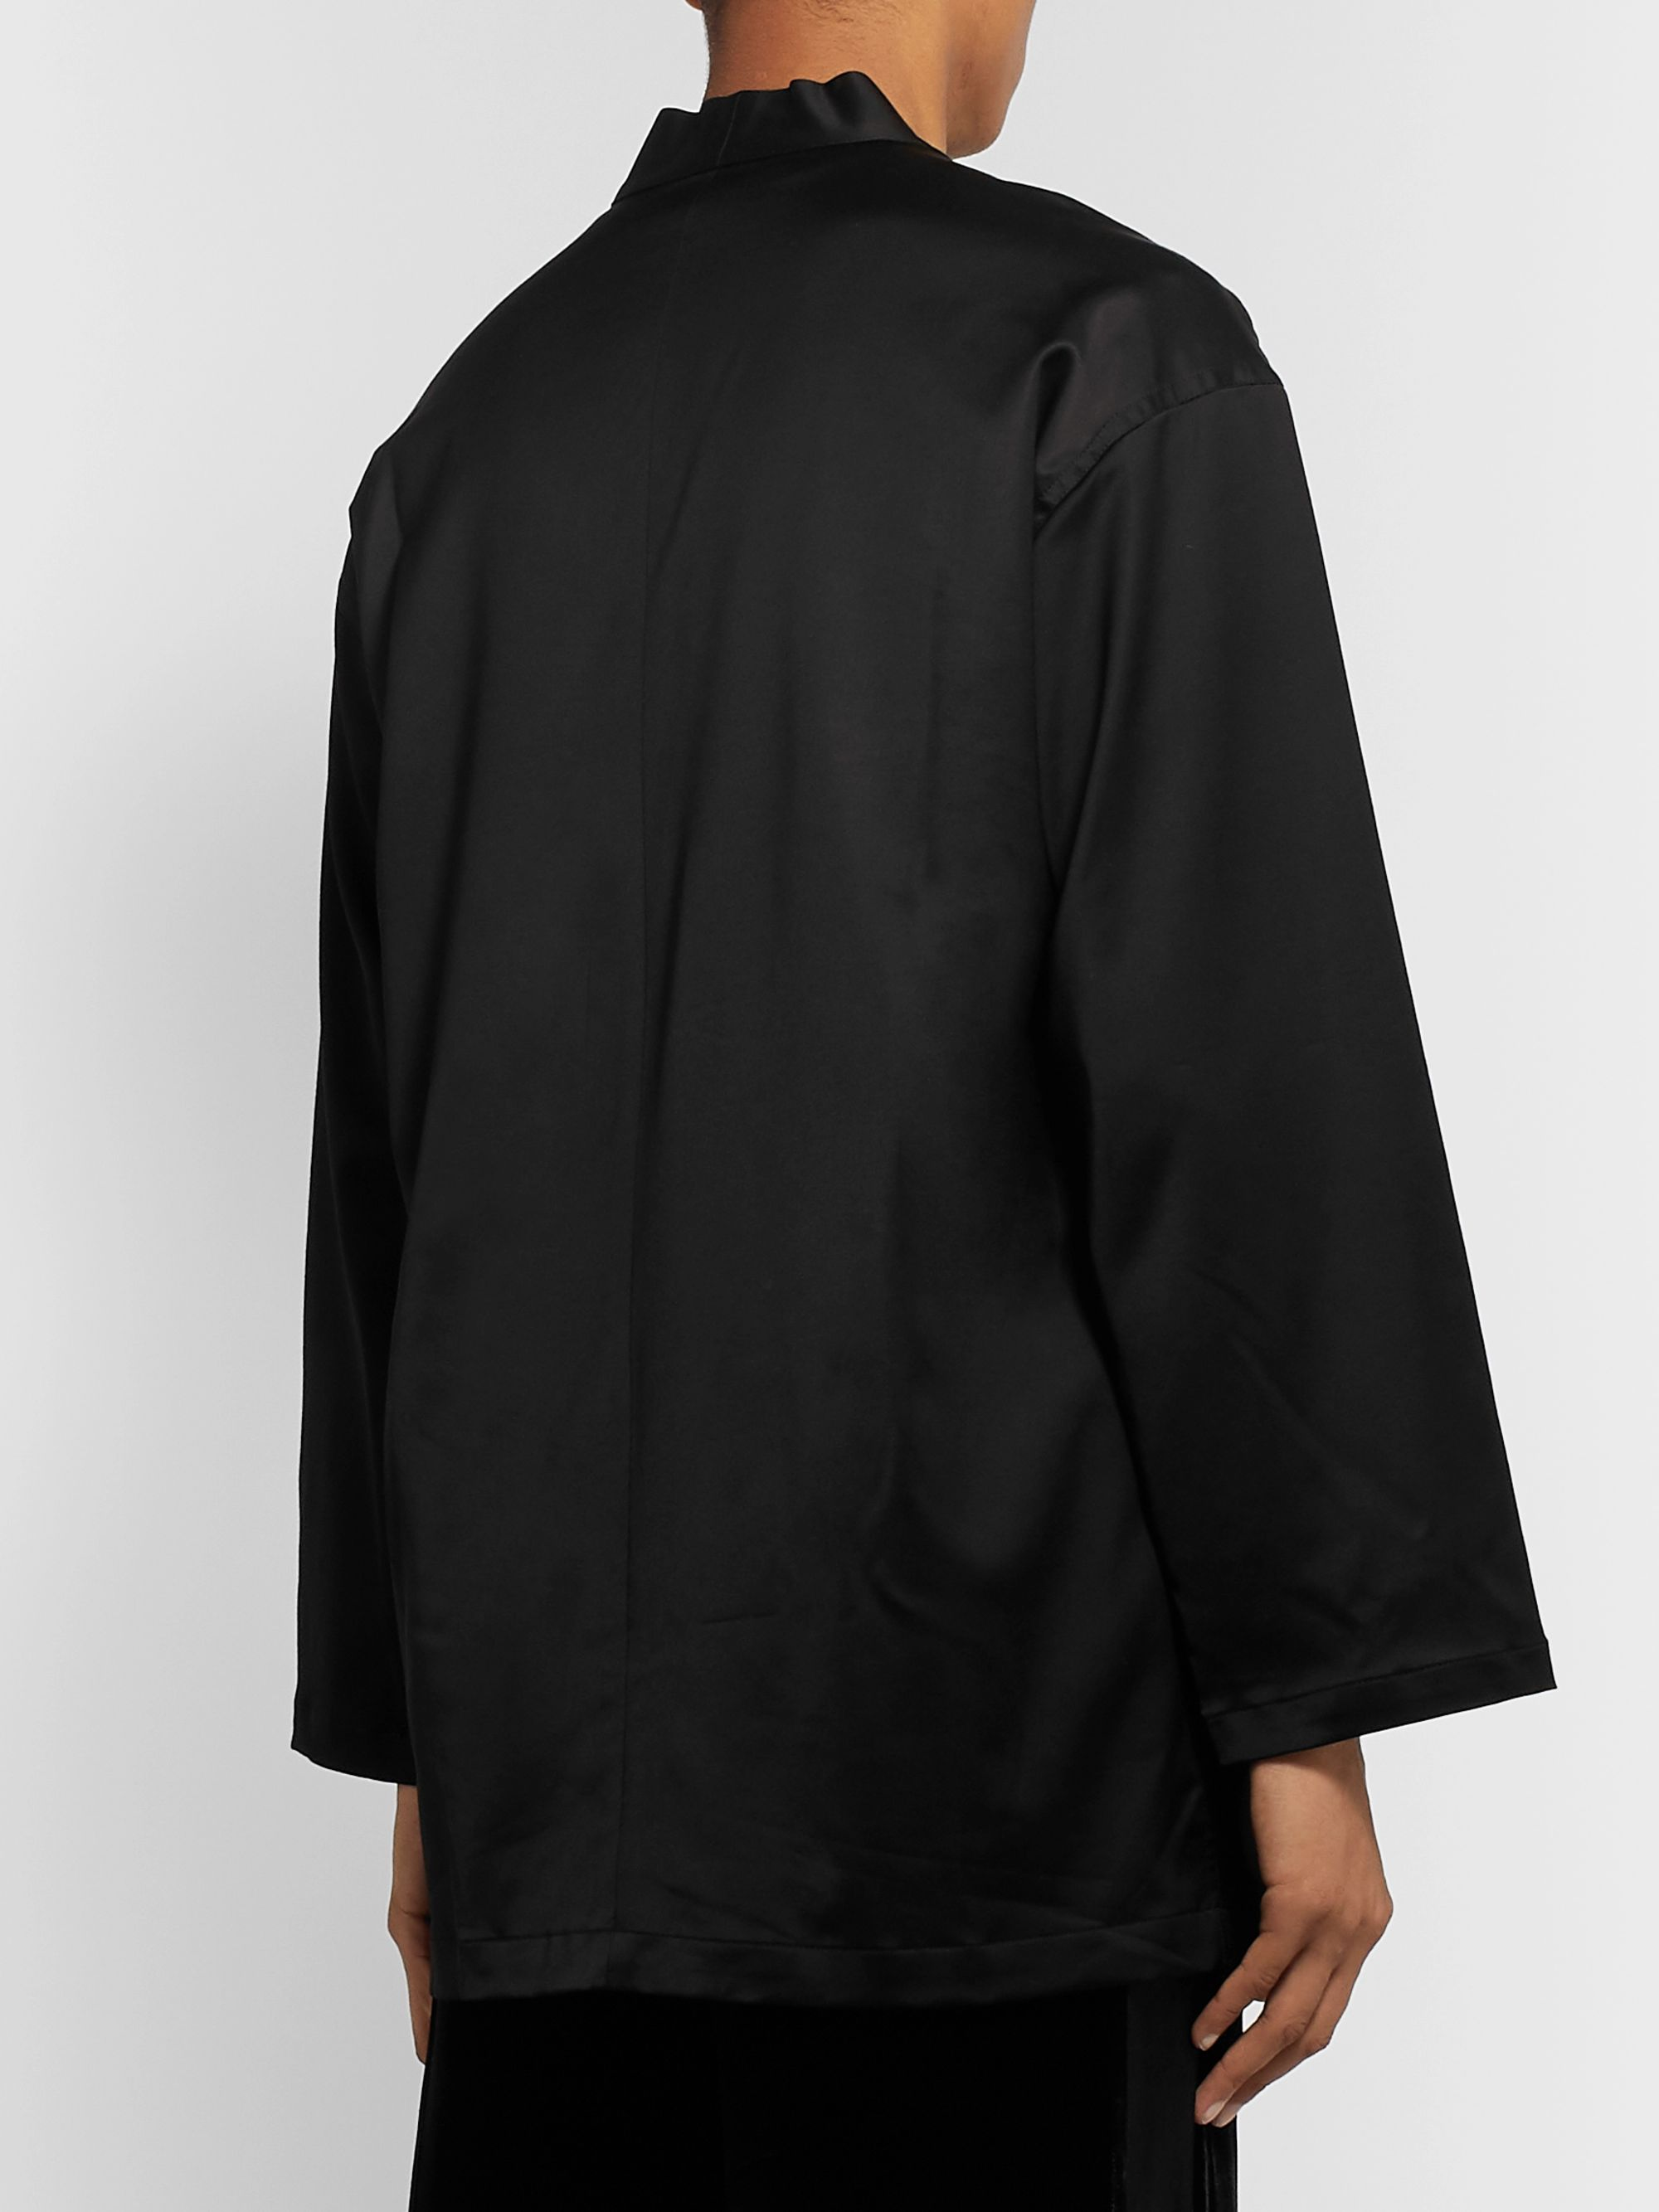 Sasquatchfabrix. Satin Jacket